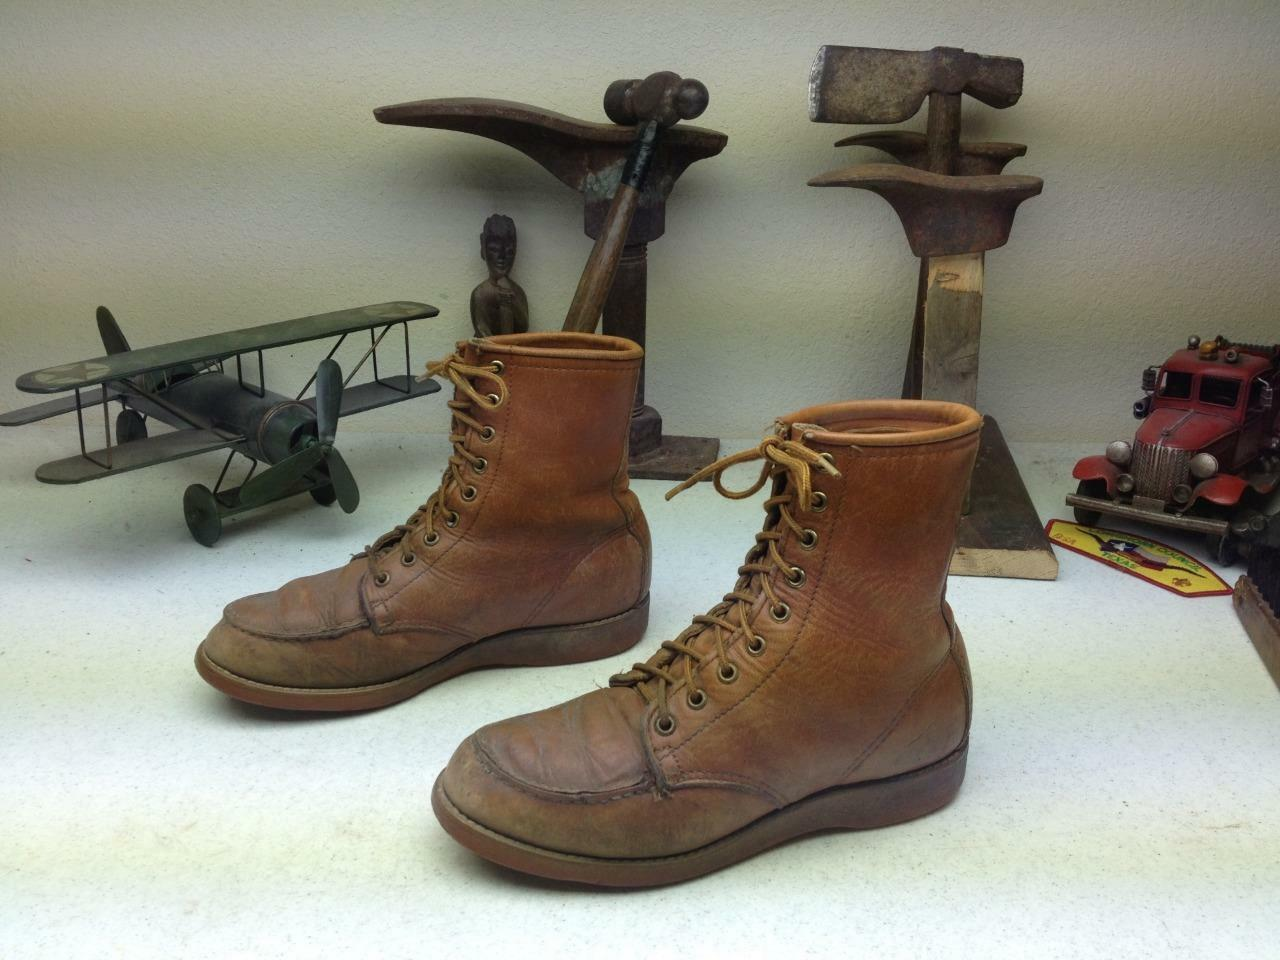 VINTAGE MADE IN USA AMBER DISTRESSED ENGINEER WORK CHORE PACKER BOOTS SIZE 4-6 M